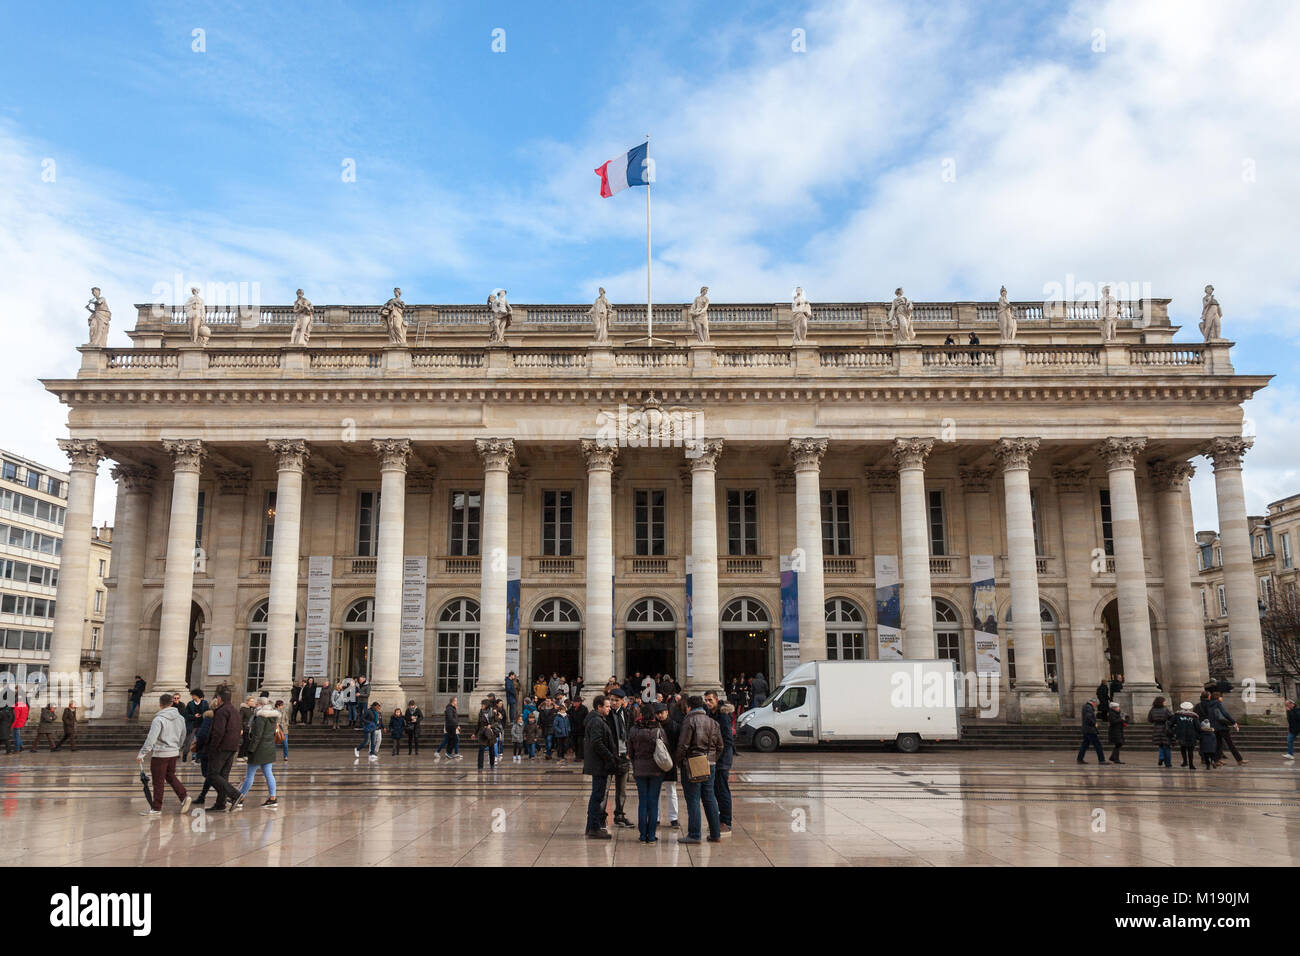 BORDEAUX, FRANCE - DECEMBER 26, 2017: Grand Theatre of Bordeaux taken during a sunny afternoon with a French flag - Stock Image